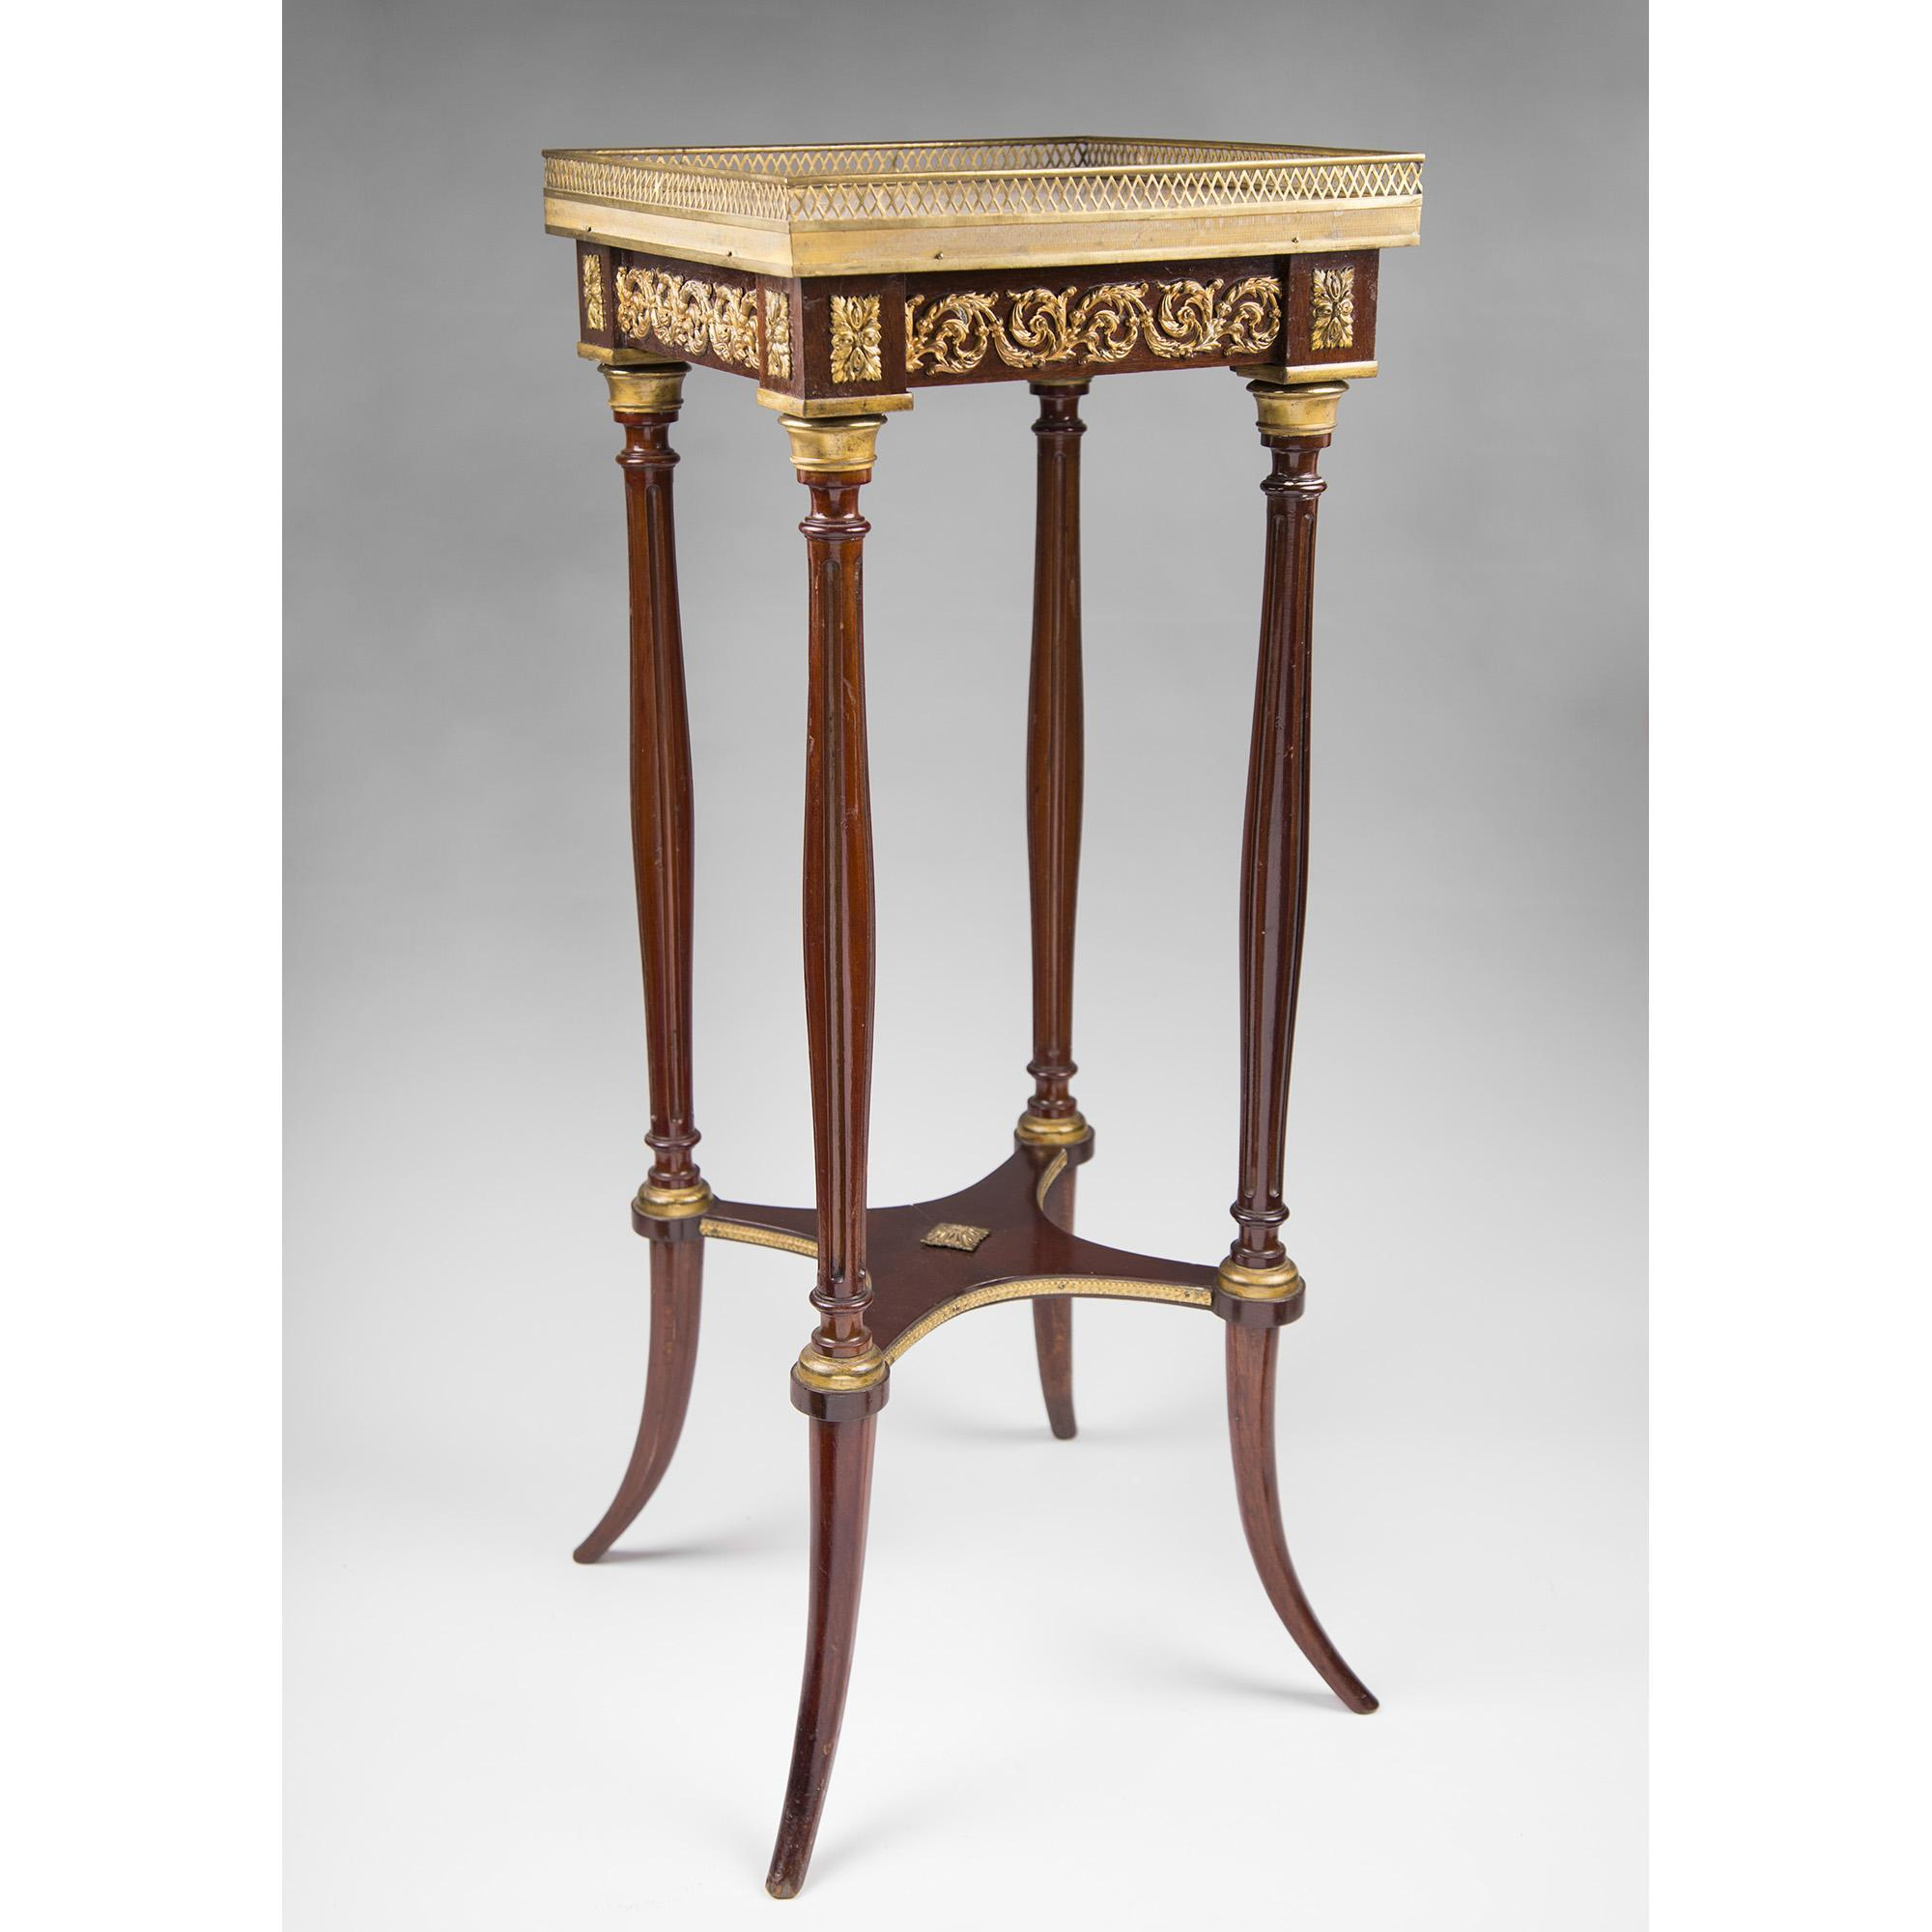 19th C. Louis XVI Style Ormolu Side Table Or Fern Stand